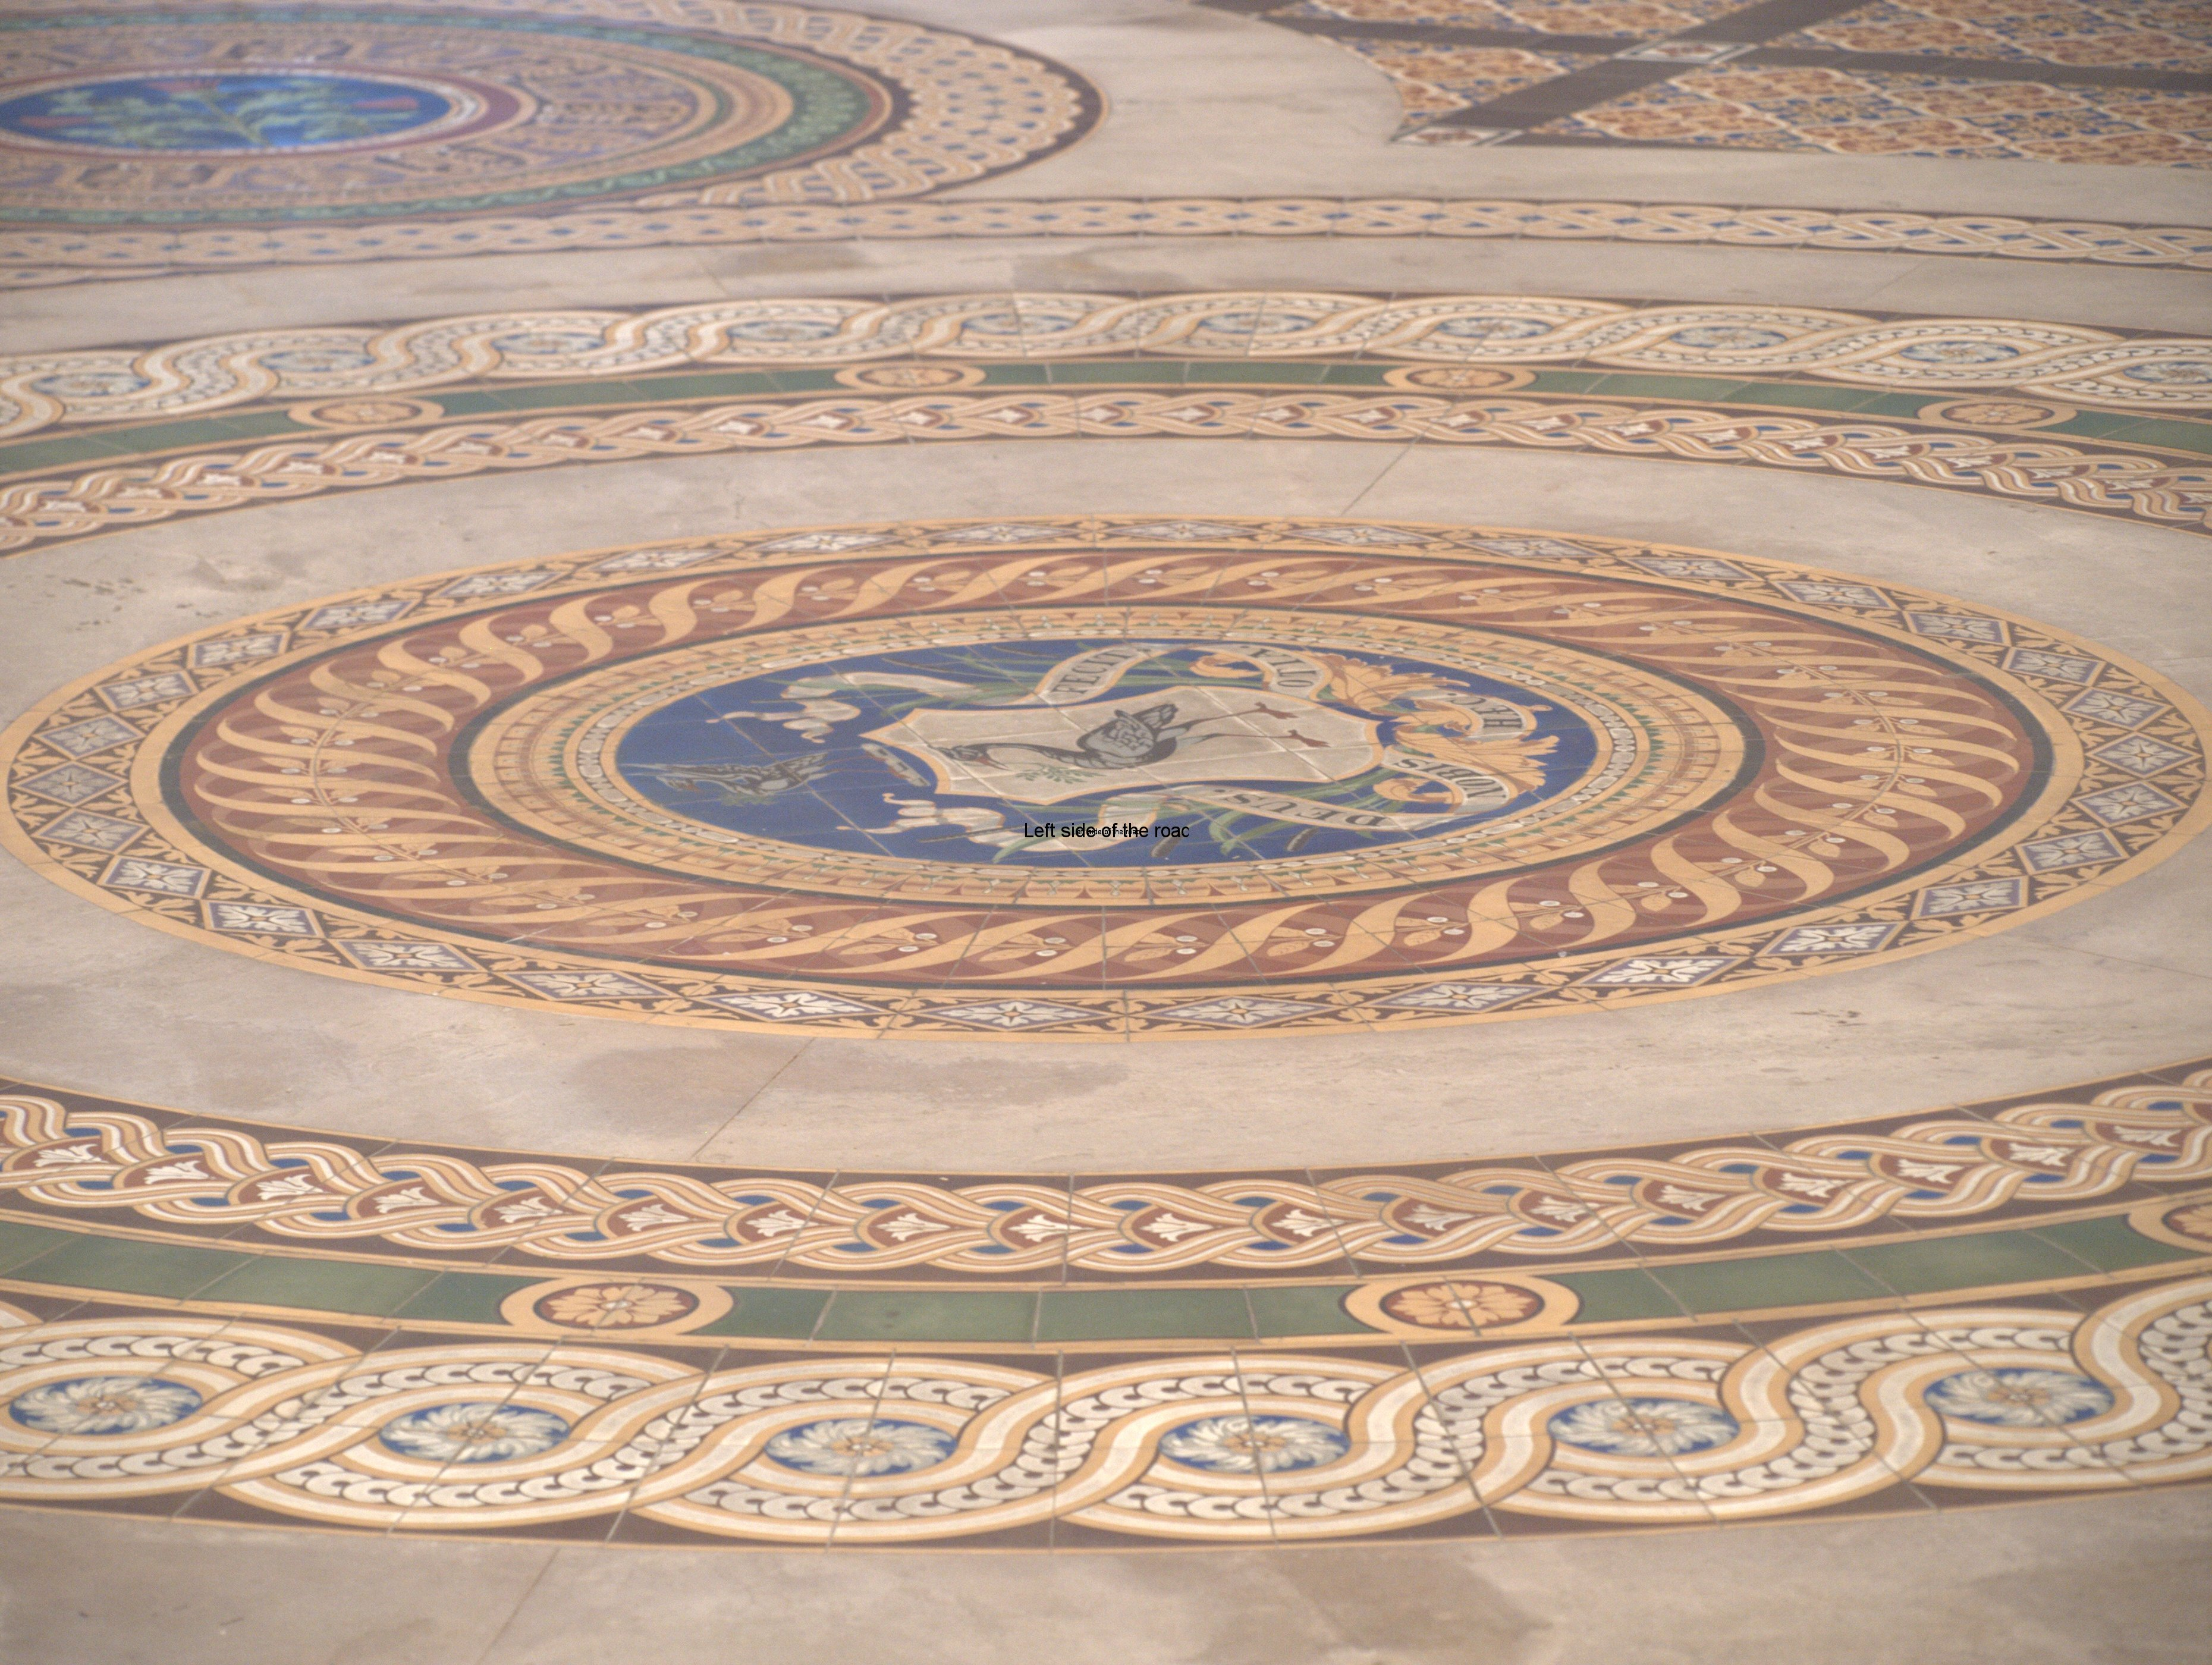 Minton Tile Floor, St George's Hall Liverpool